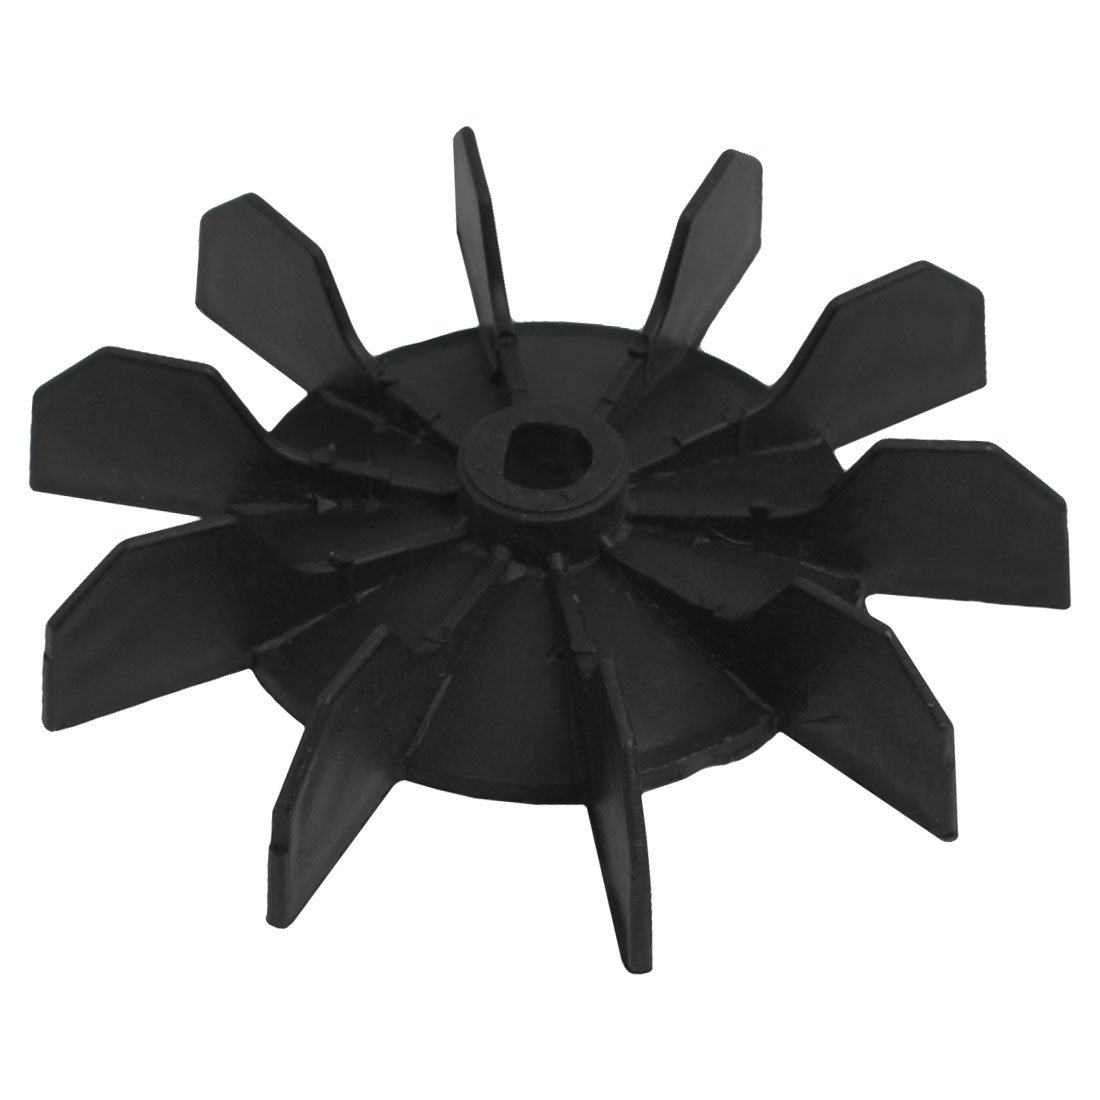 He Inner Bore 10 Impeller Air Compressor Motor Fan Blade